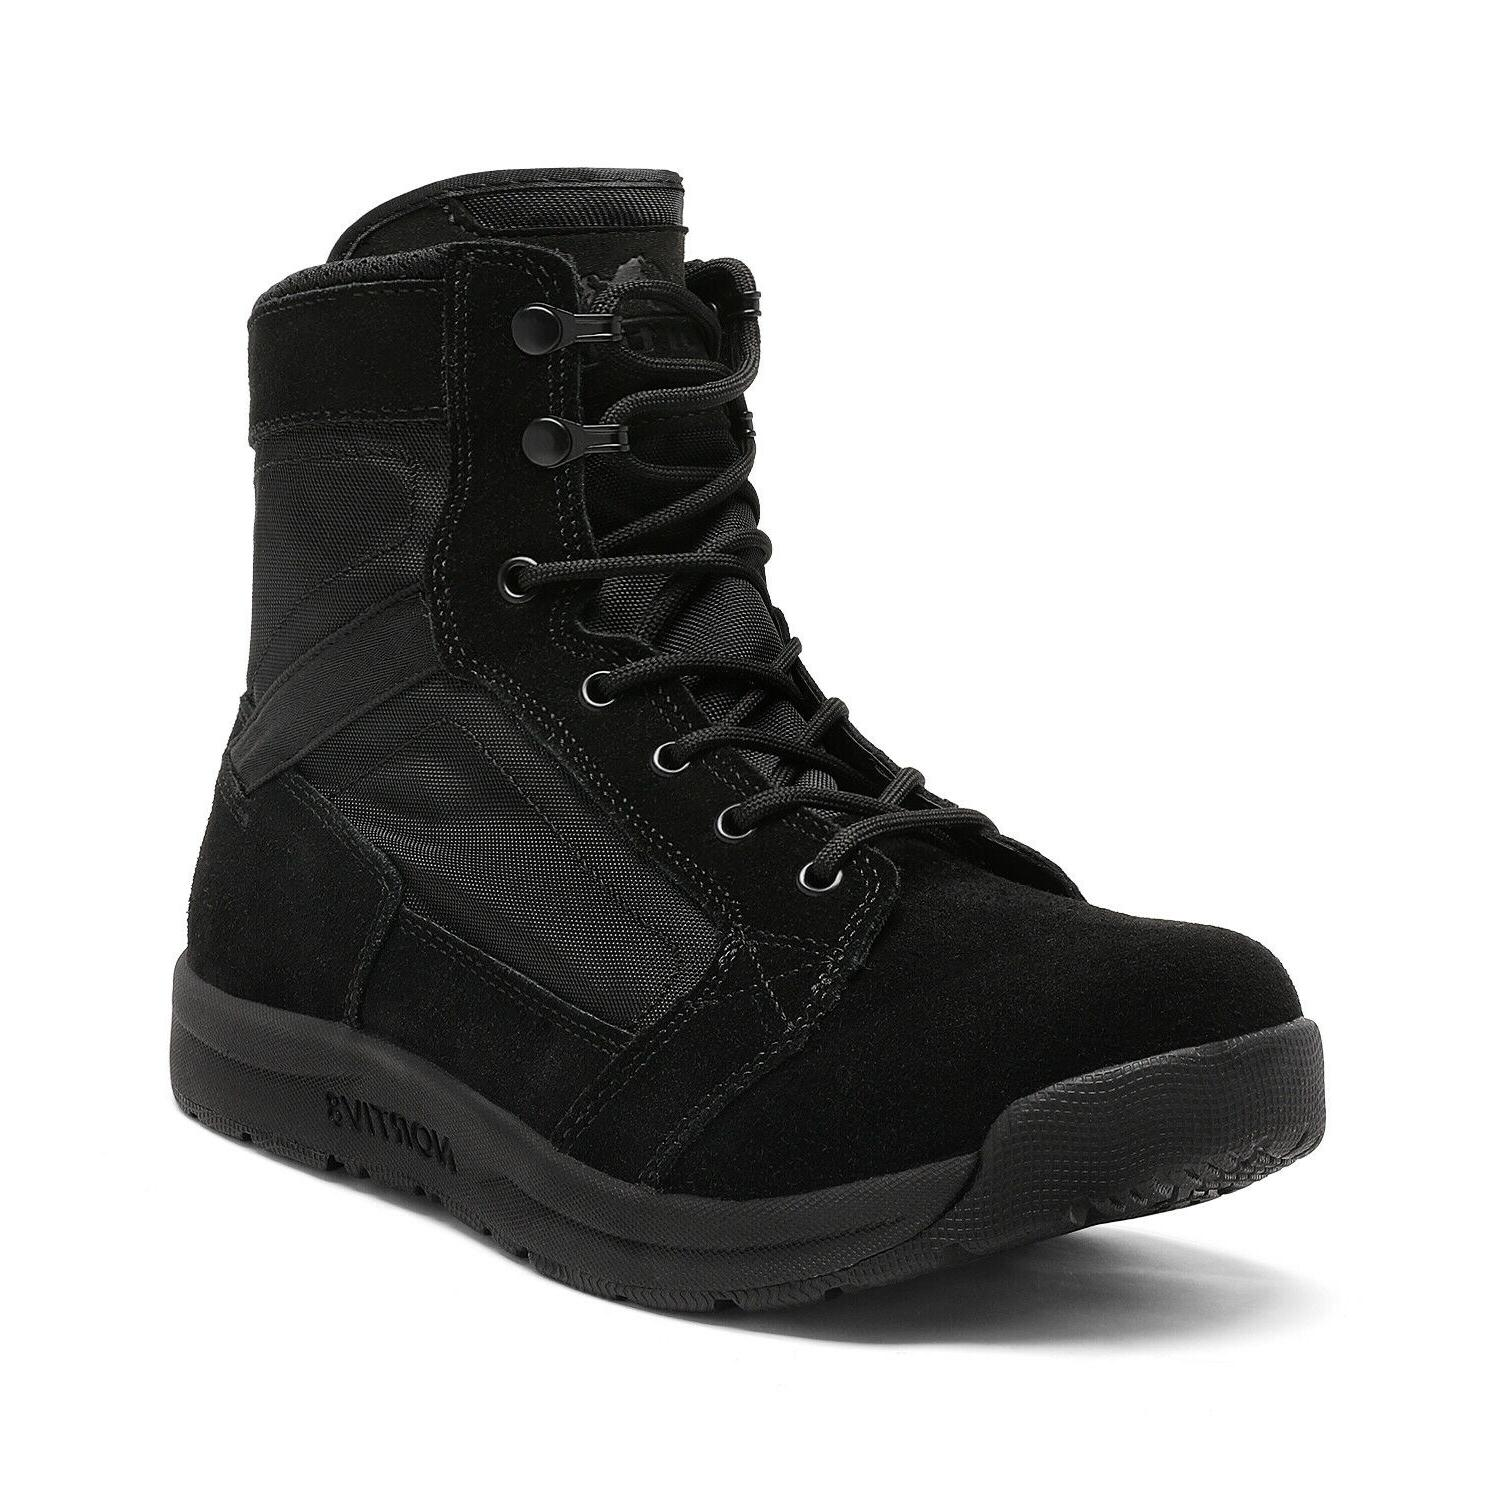 Mens Army Boots Lightweight Work Boots